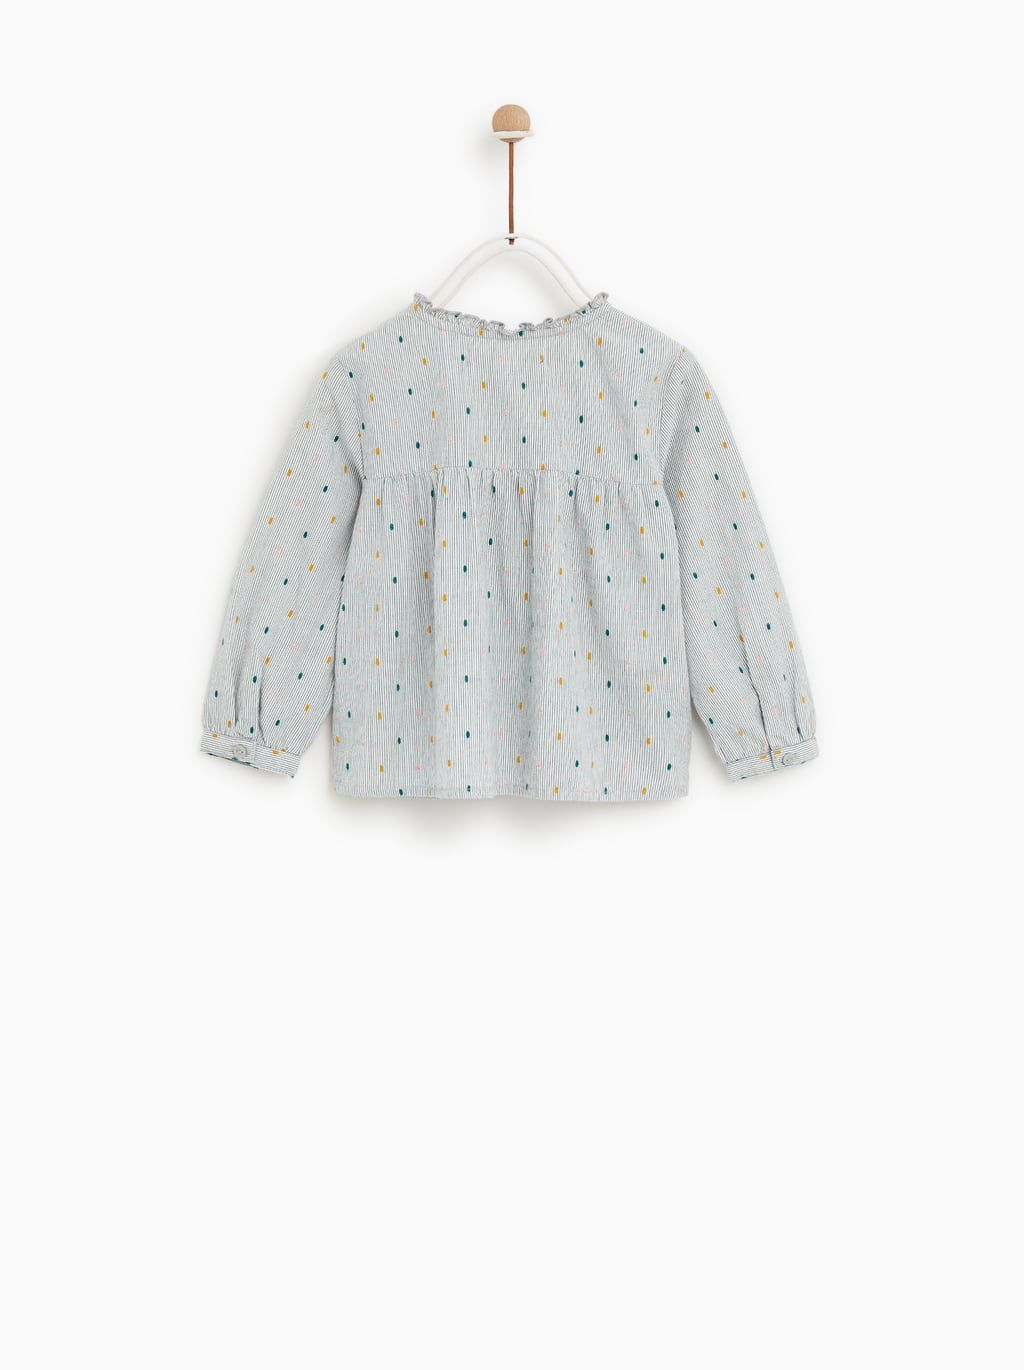 Image 5 Of Frilled Shirt From Zara Fashionable Baby Clothes Kids Outfits Kids Fashion